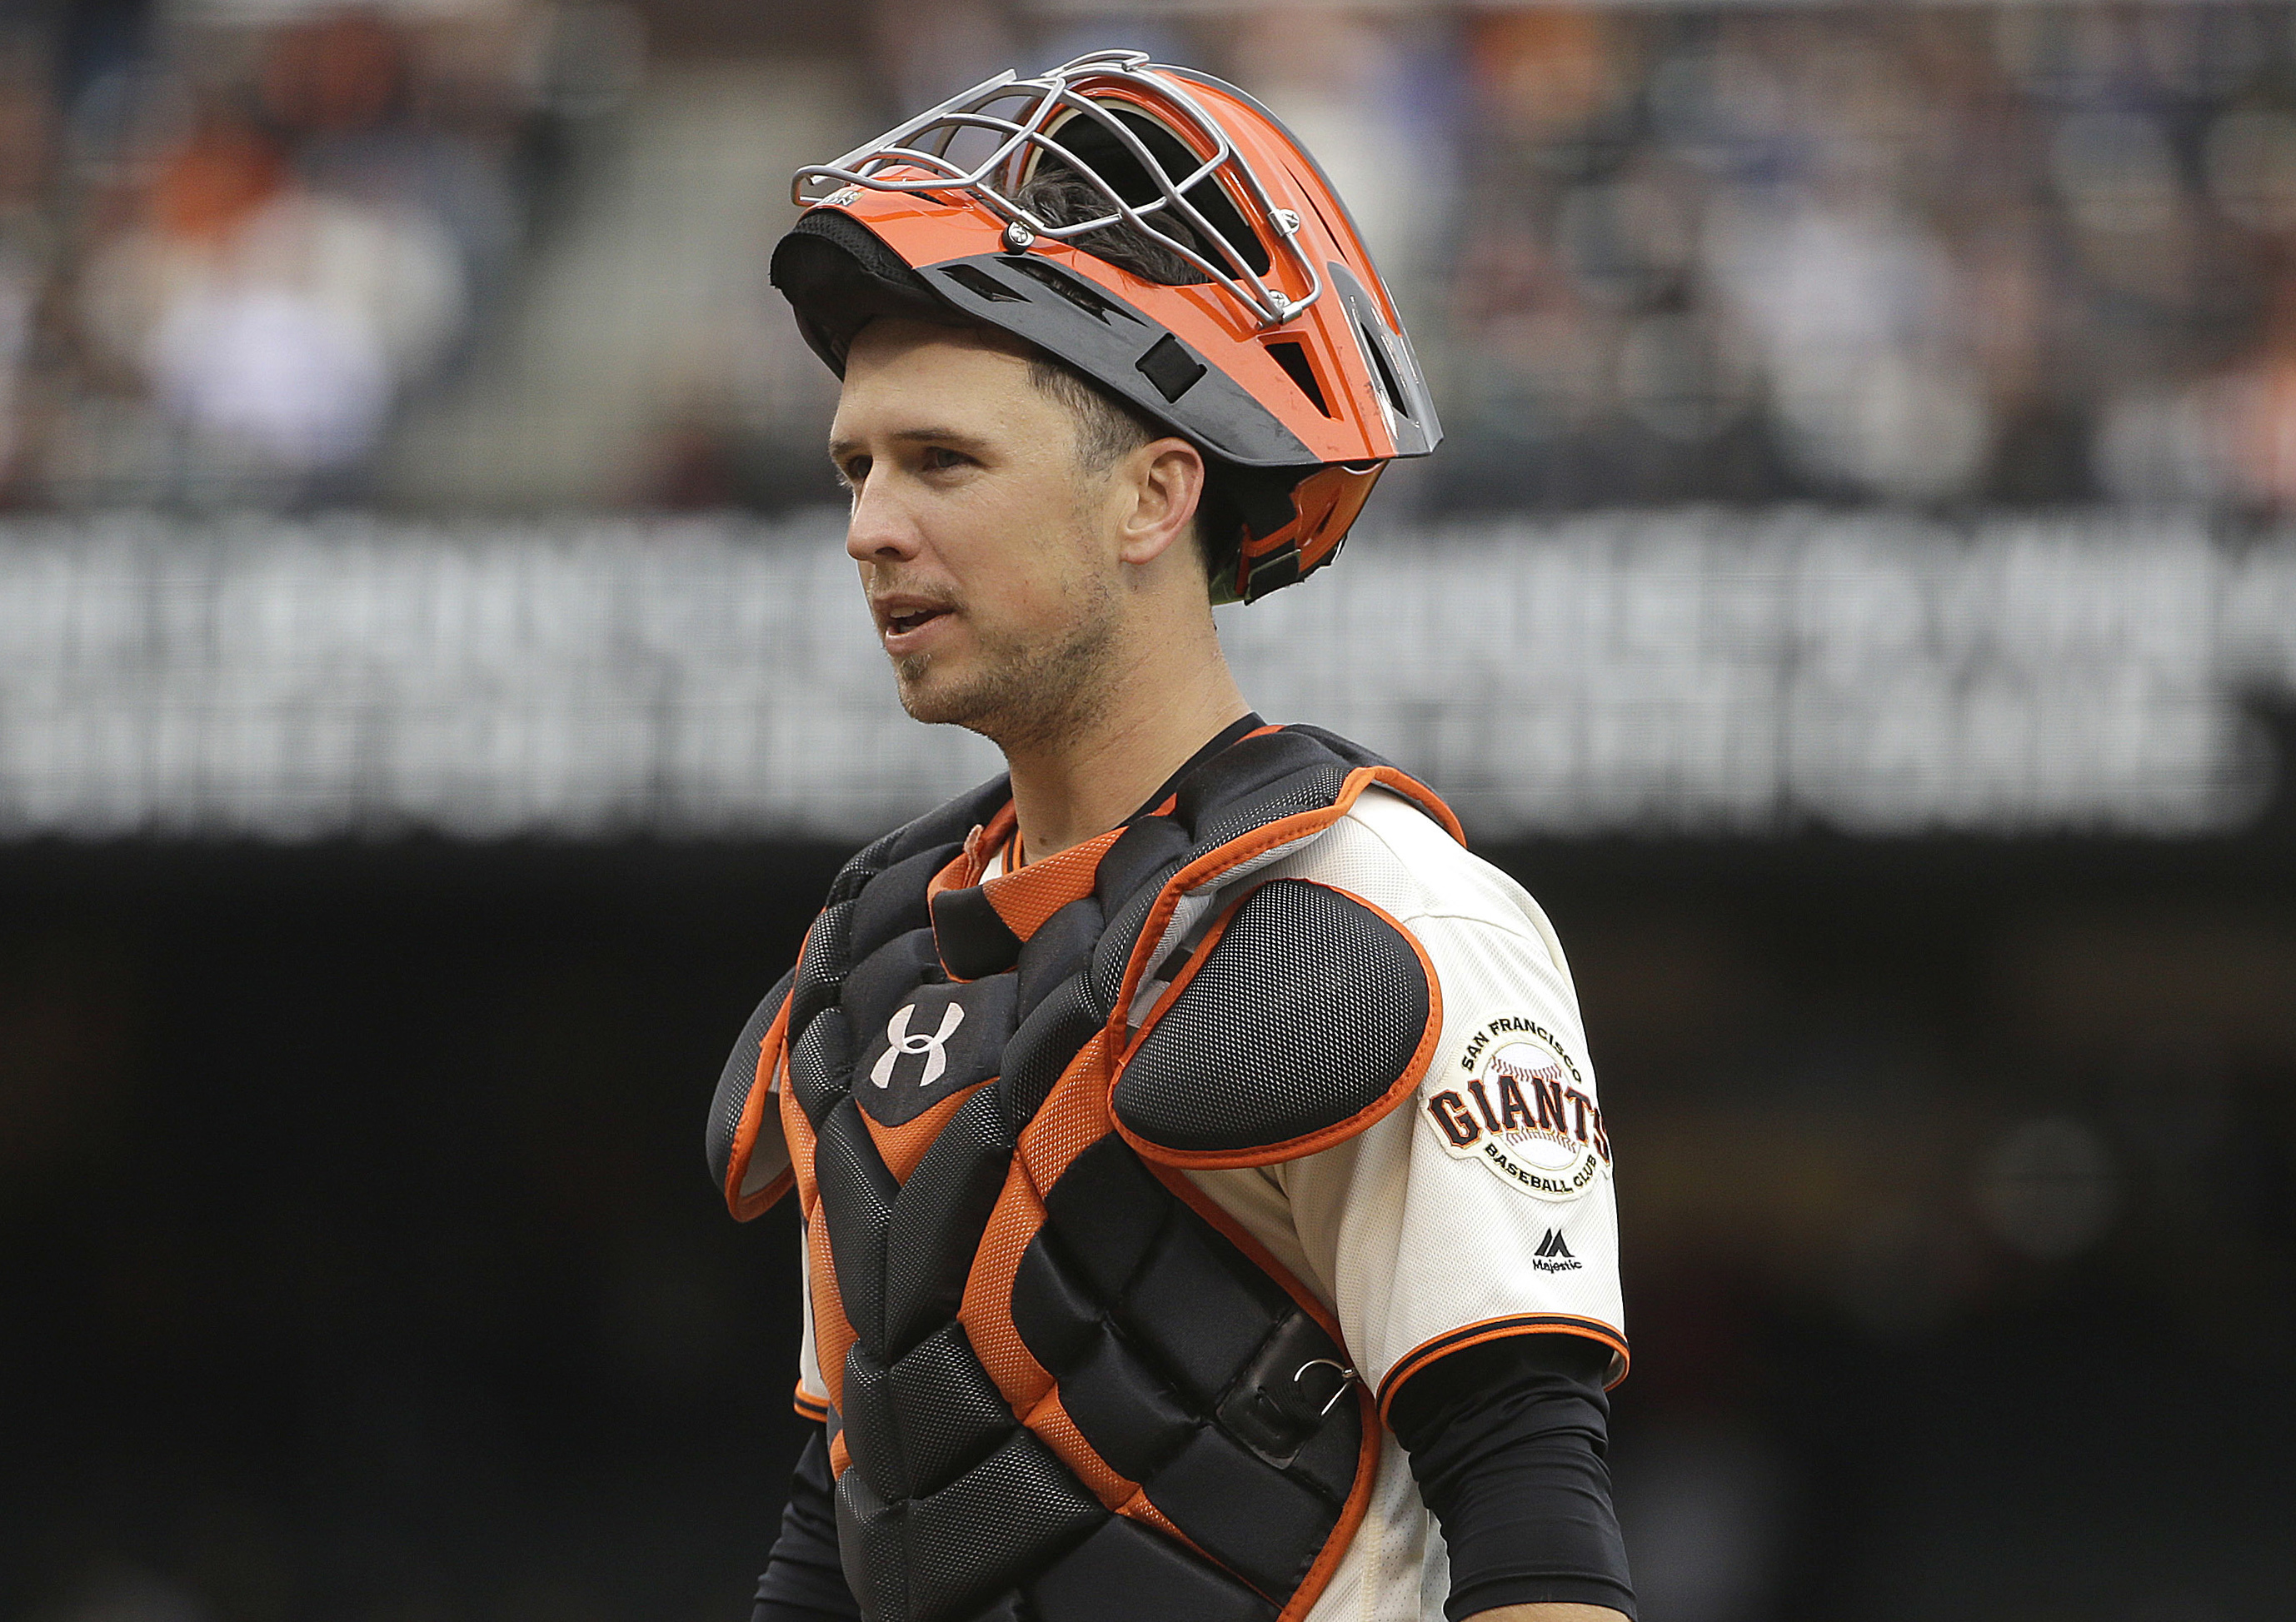 FILE - In this April 9, 2016, file photo, San Francisco Giants catcher Buster Posey pauses during the team's baseball game against the Los Angeles Dodgers in San Francisco. Posey was named starting catcher for the All-Star Game, in voting by fans announce